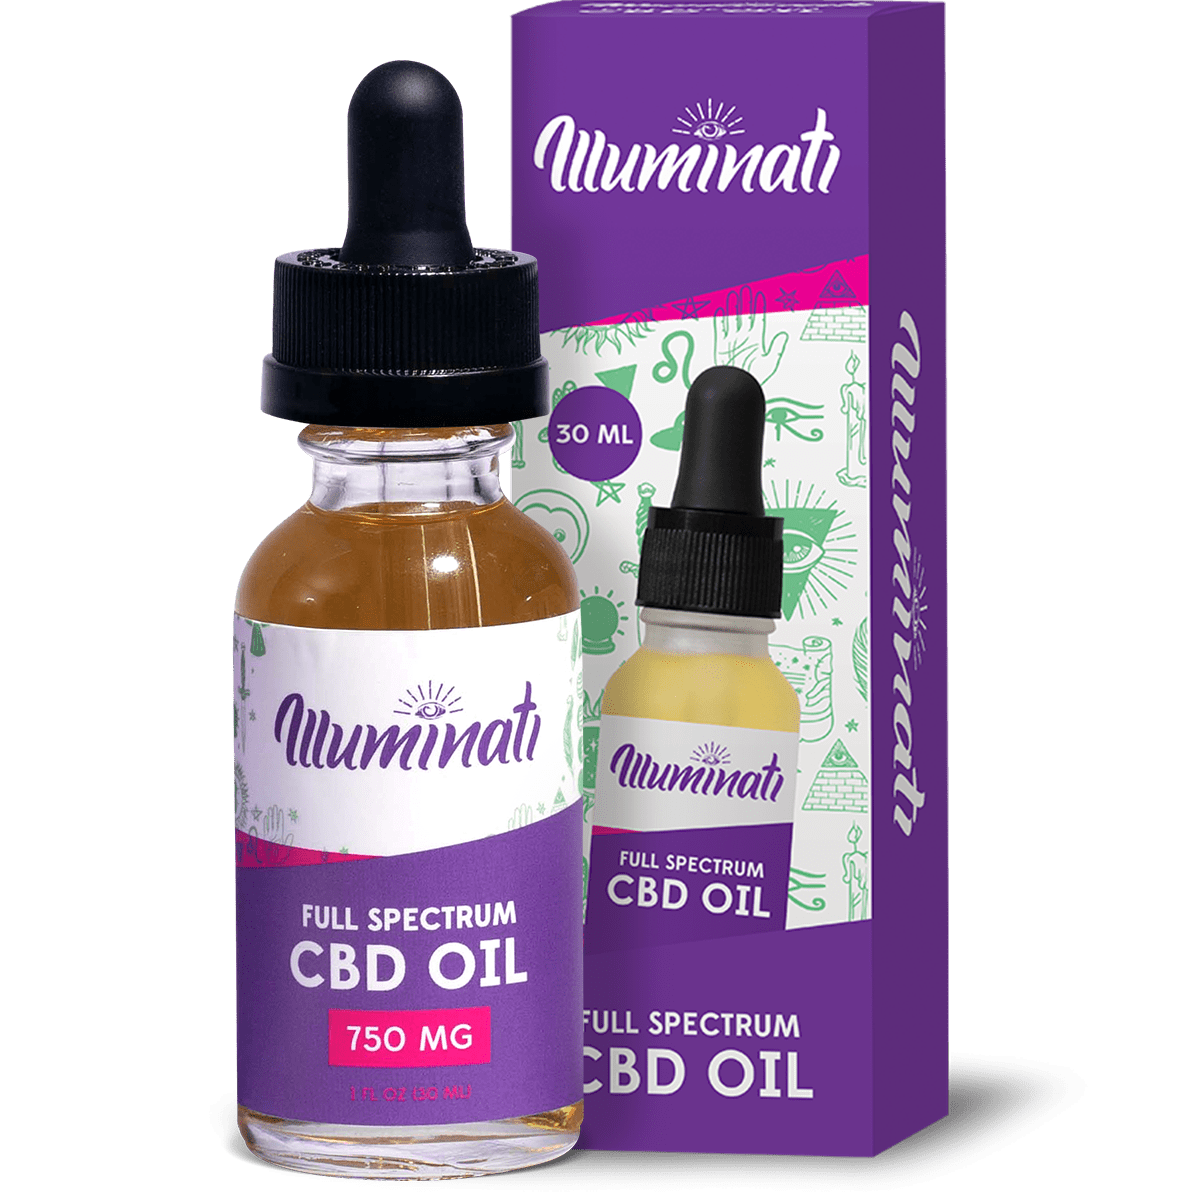 Illuminati Full Spectrum CBD Oil Drops 750mg Front